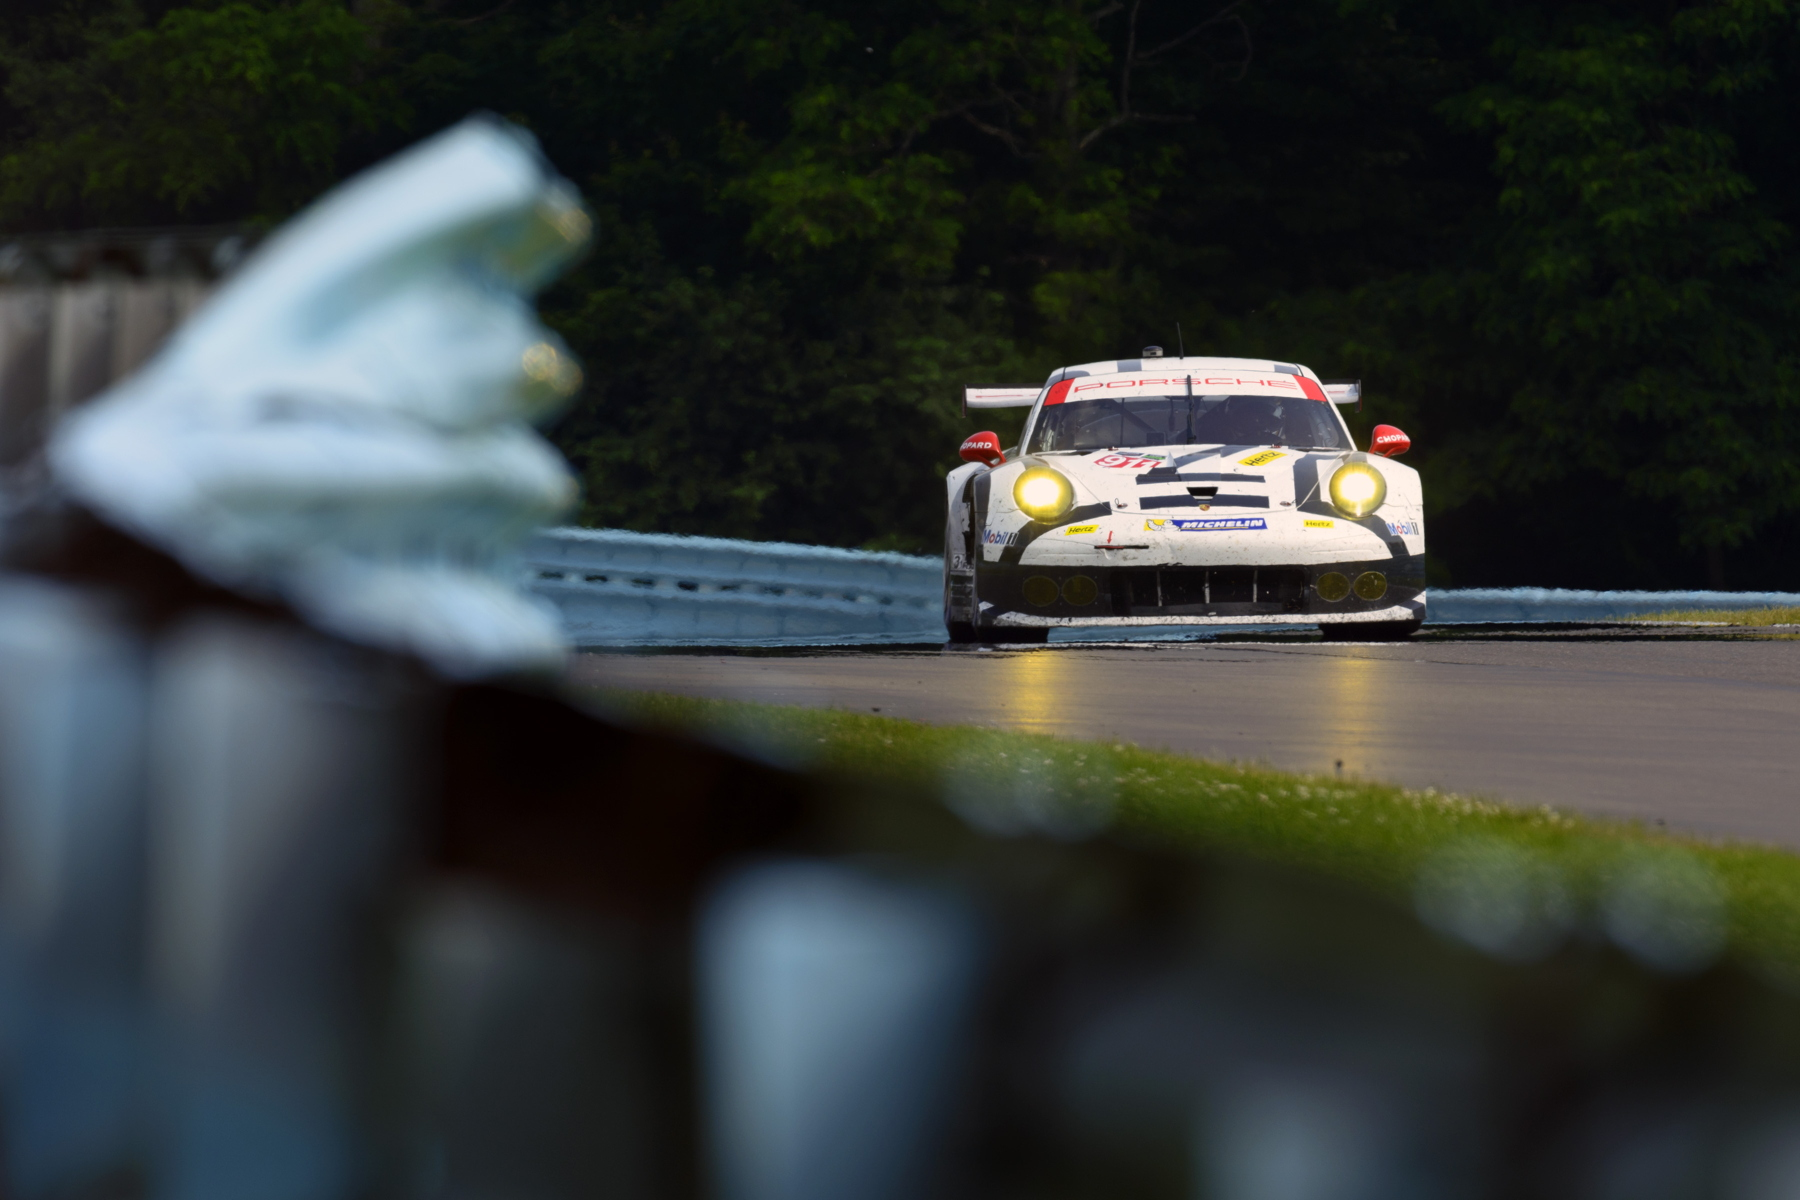 Even when one 911 RSR ran into difficulties, the other car would invariably perform well...